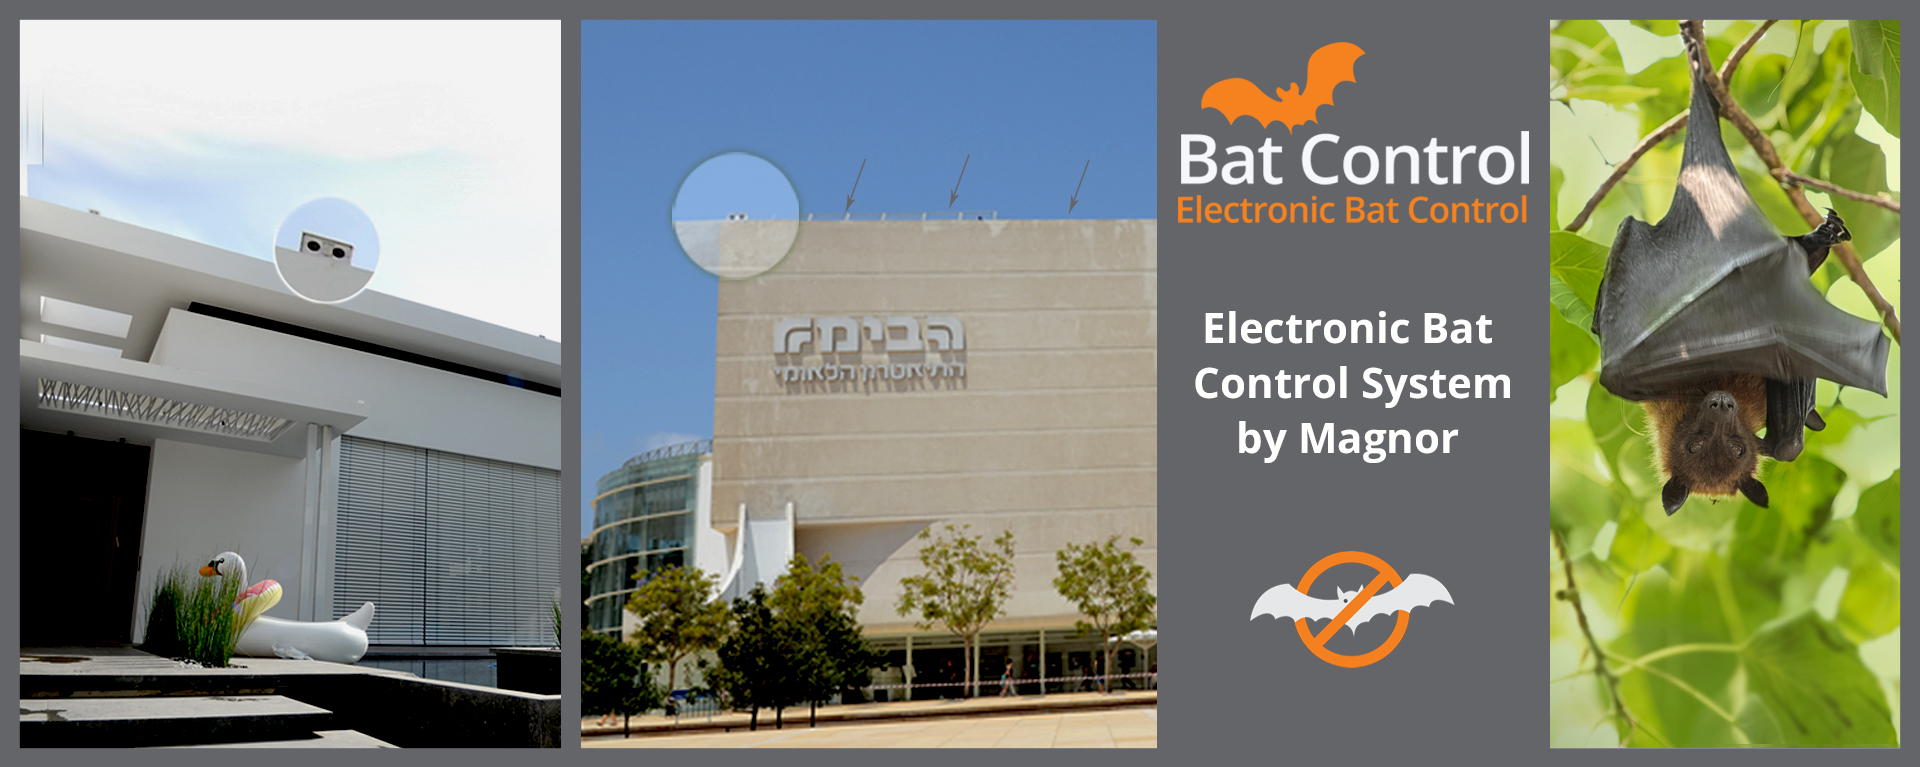 Magnor_BAT CONTROL_web page_FINAL_ ENG